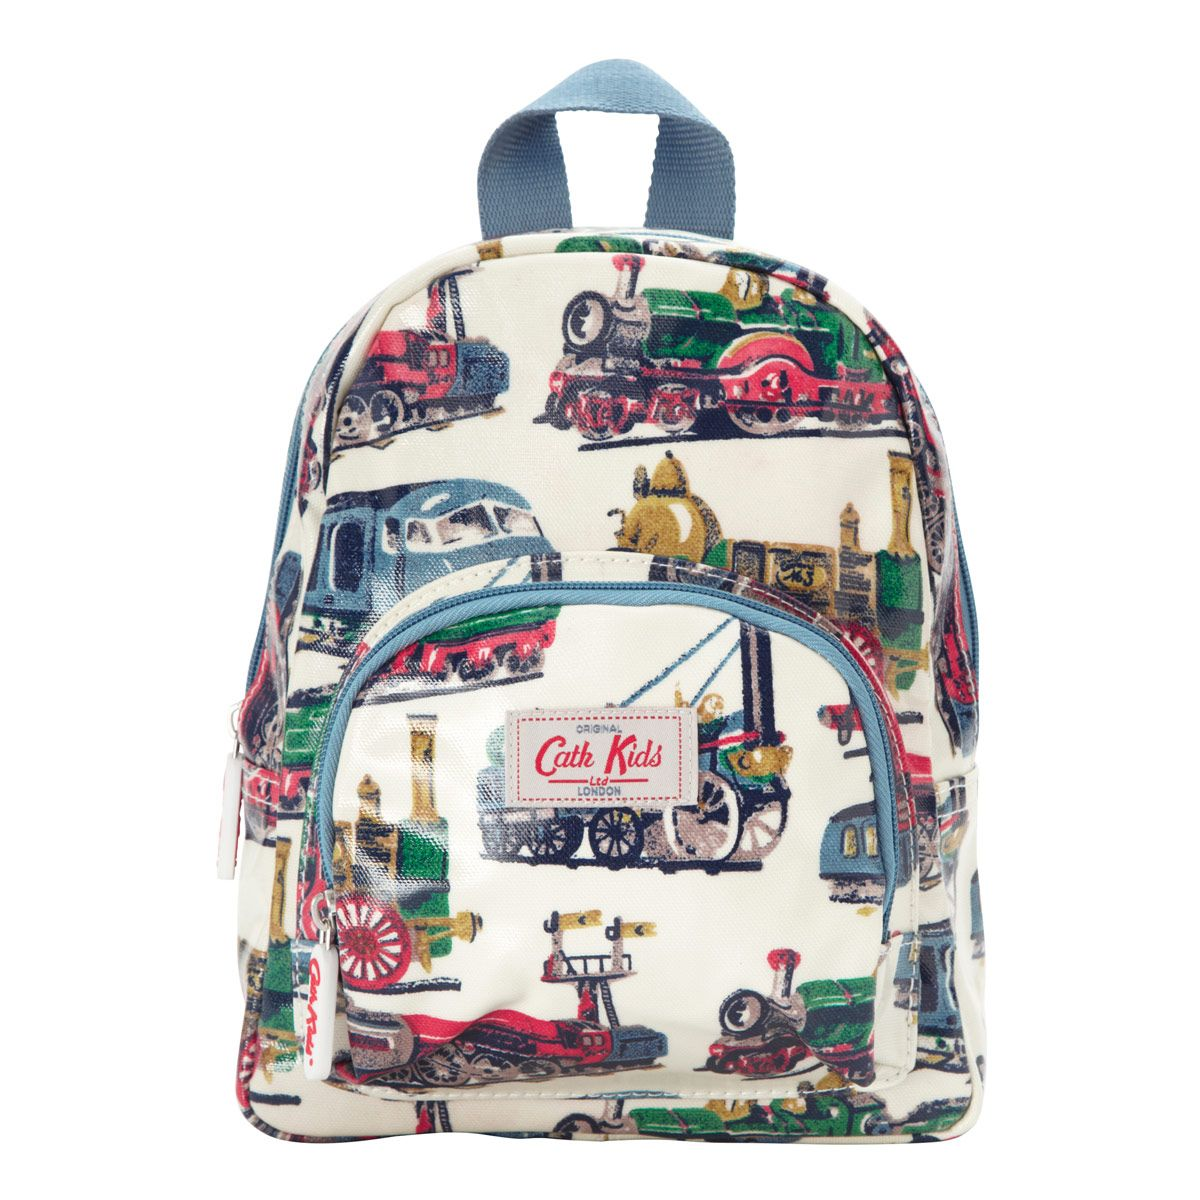 Cath Kidston Has Adorable Children S Accessories Including